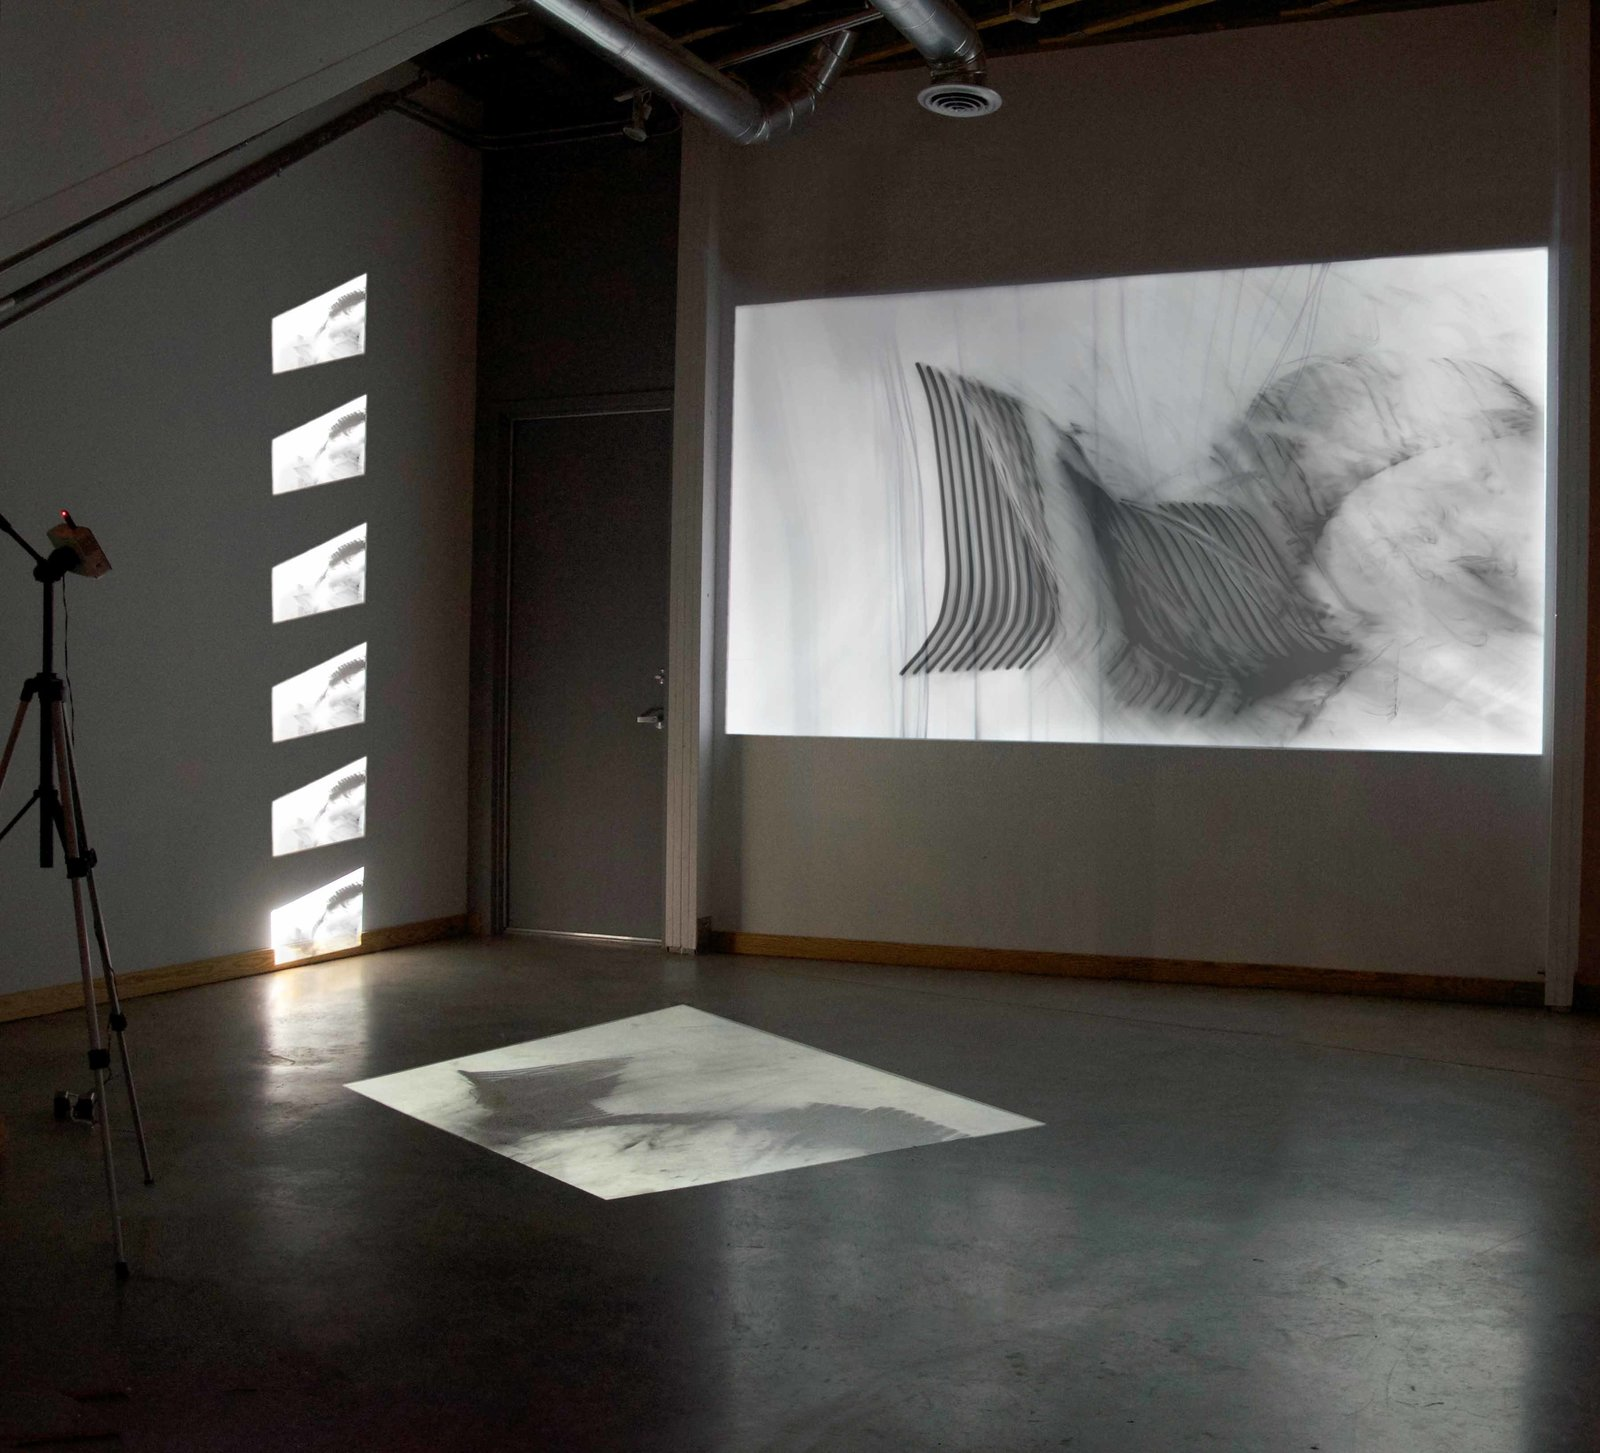 A new Lightroom exhibit by multimedia artist Bojana Ginn is set to open at the end of January 2016. Here, a three-channel video installation reinterprets the act of drawing through a new medium. Tagged: Shed & Studio, Living Space, and Den.  Photo 11 of 12 in A Home, Studio, and Gallery Support a Growing Art Scene in Georgia